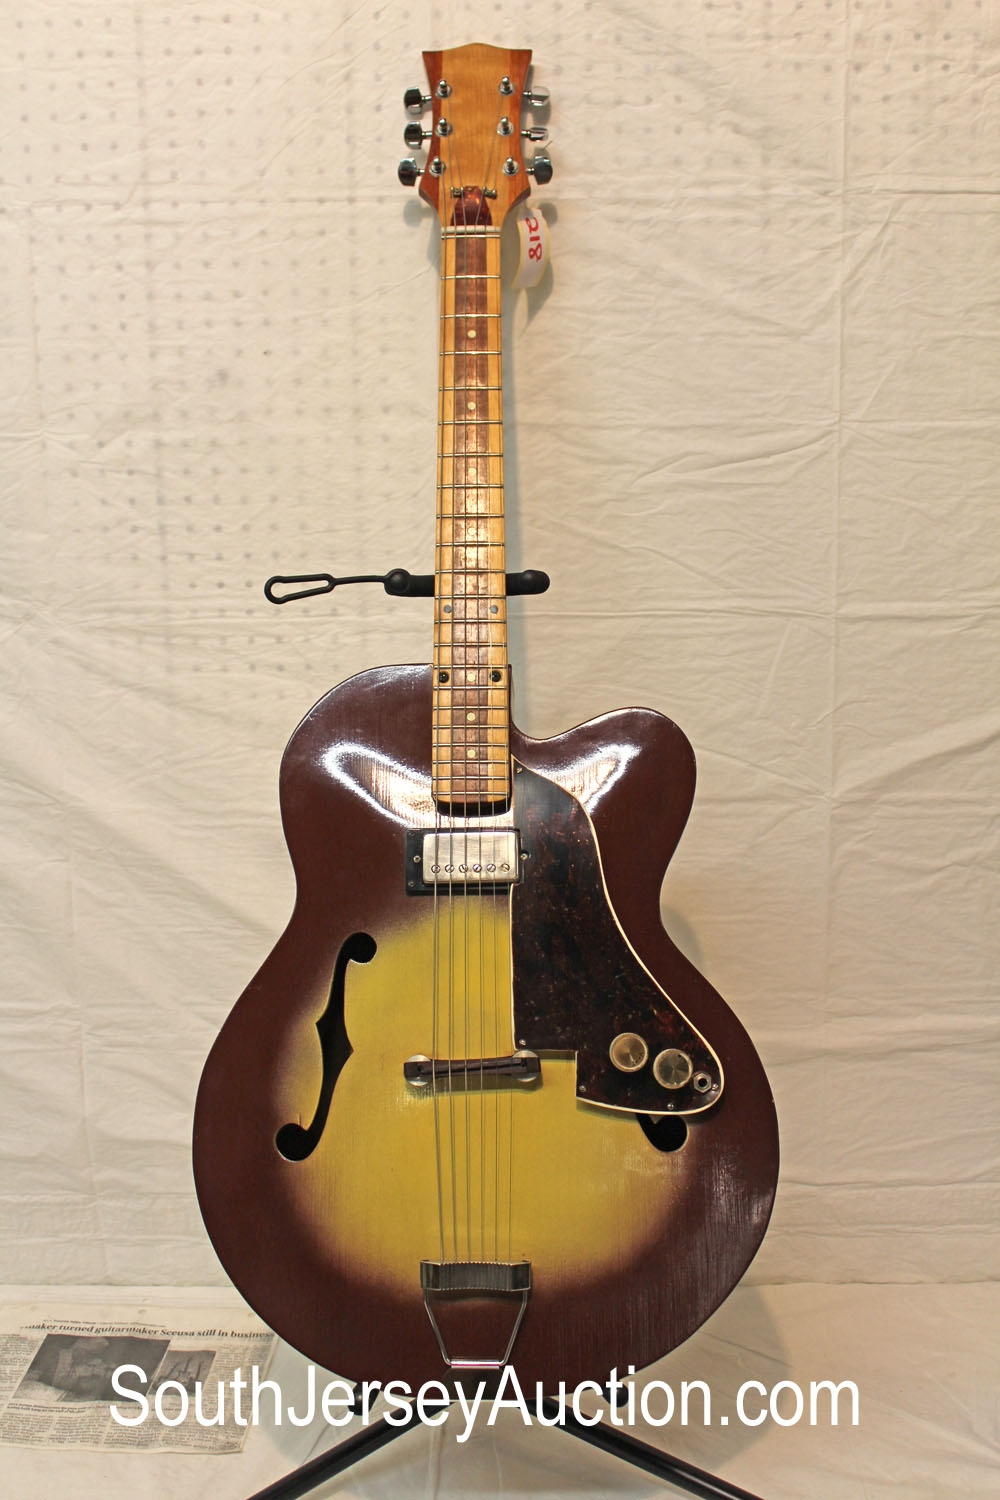 Jerry Sceusa, known for being guitar beautiful neck maker who decided to build 'one and only one' guitar - ugly guitar, with news article from Prescott Valley Tribune